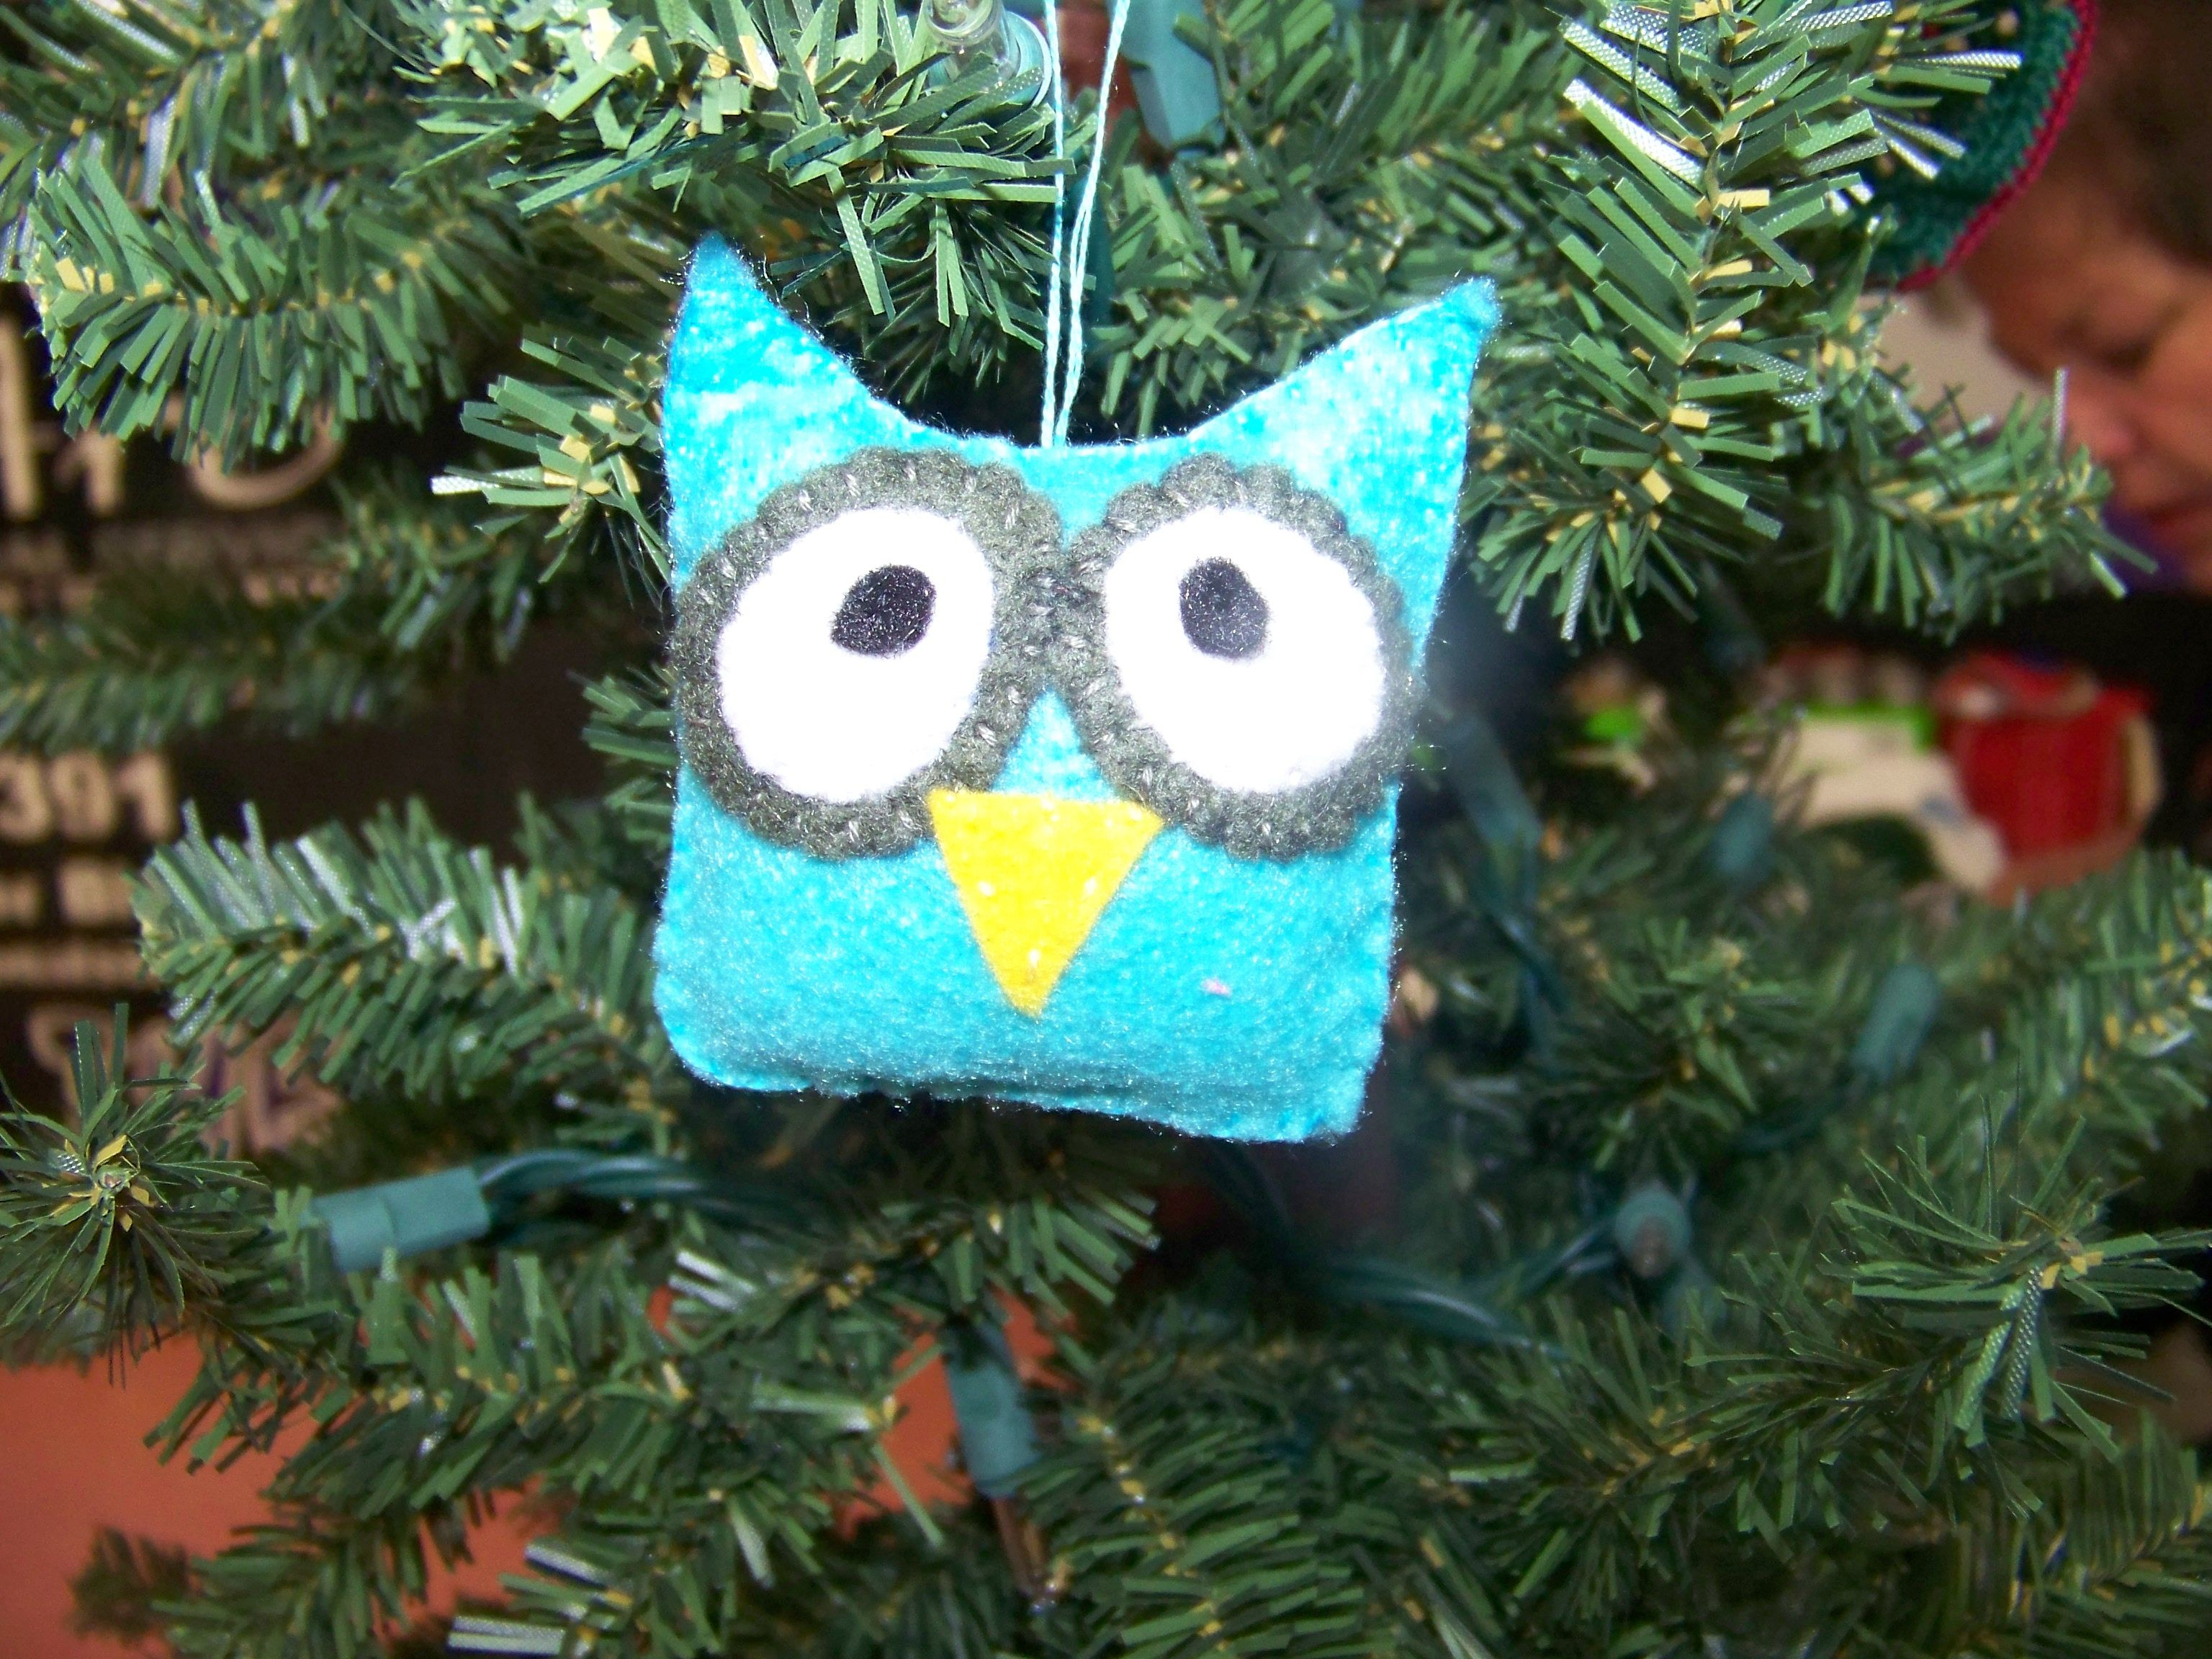 Teal Baby Owl Ornament ~ made by me